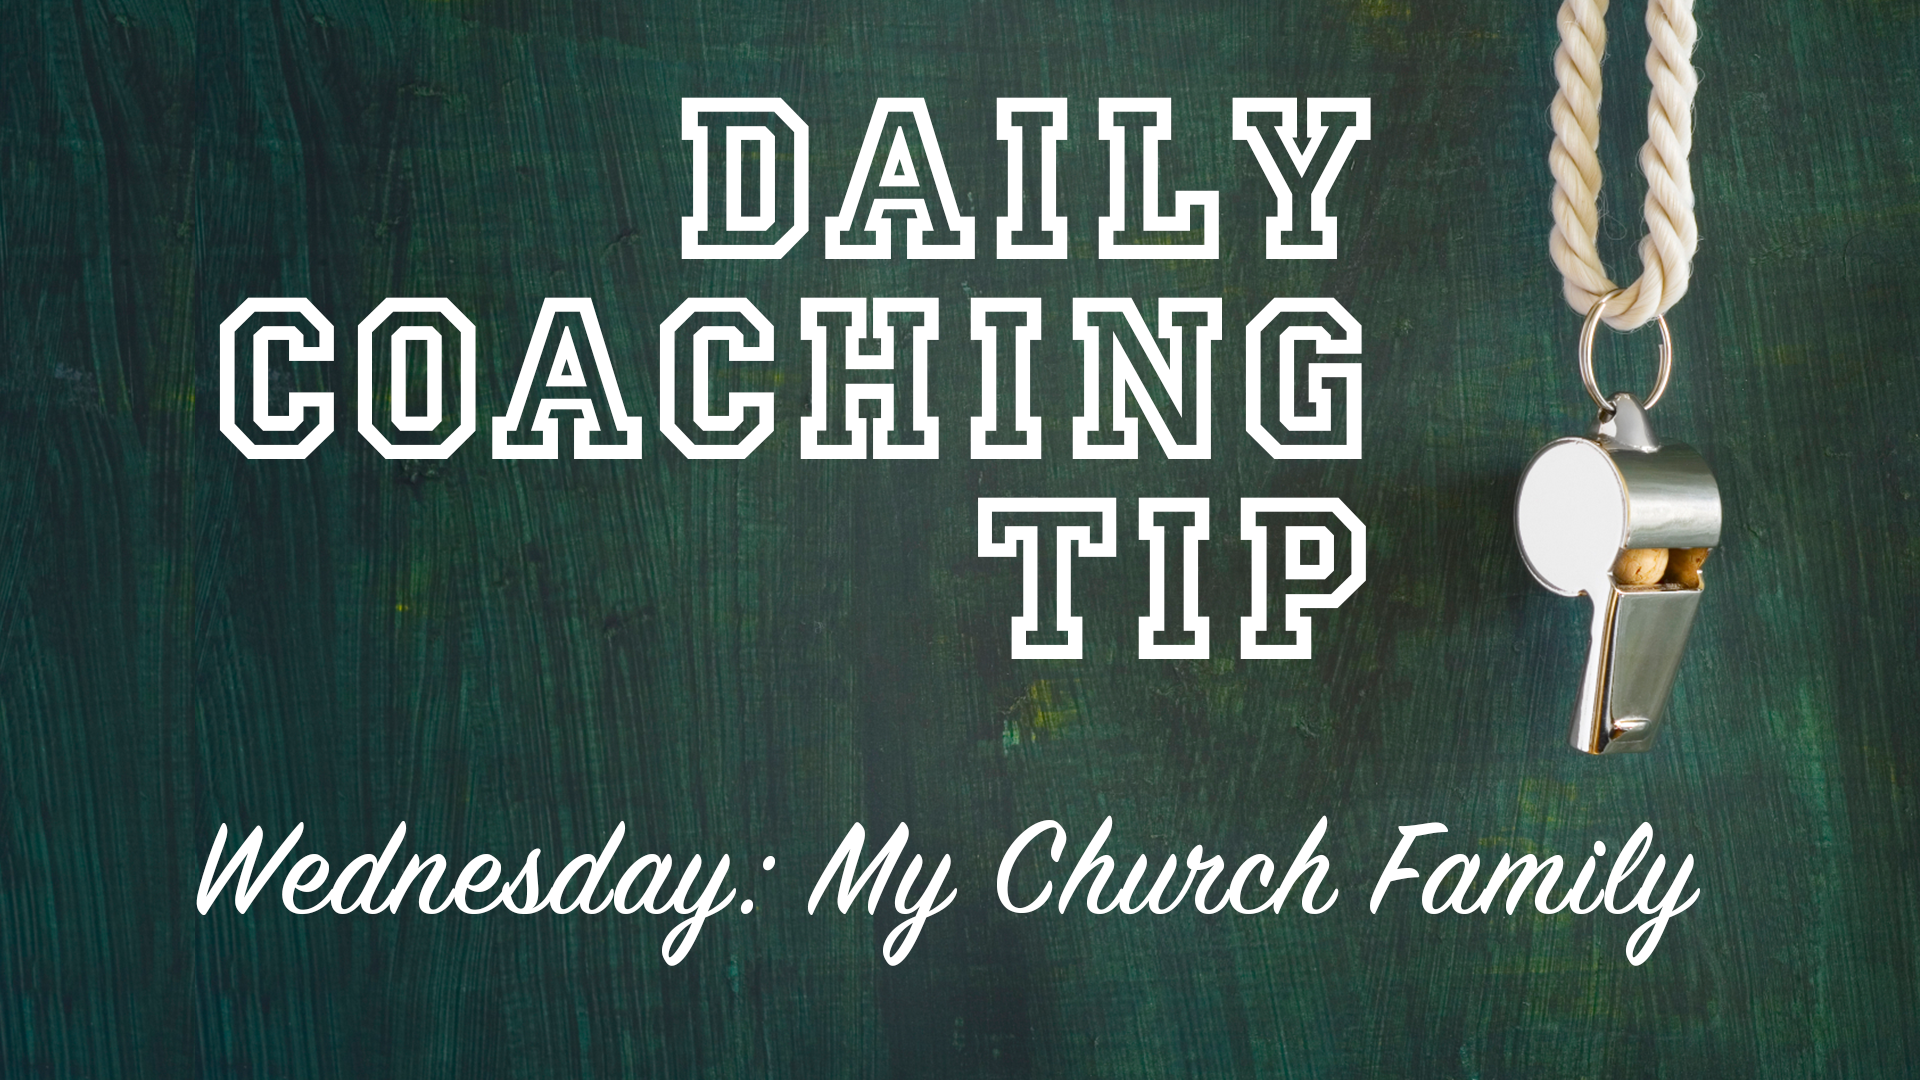 Daily Coaching Tip, Wednesday, June 29, 2016